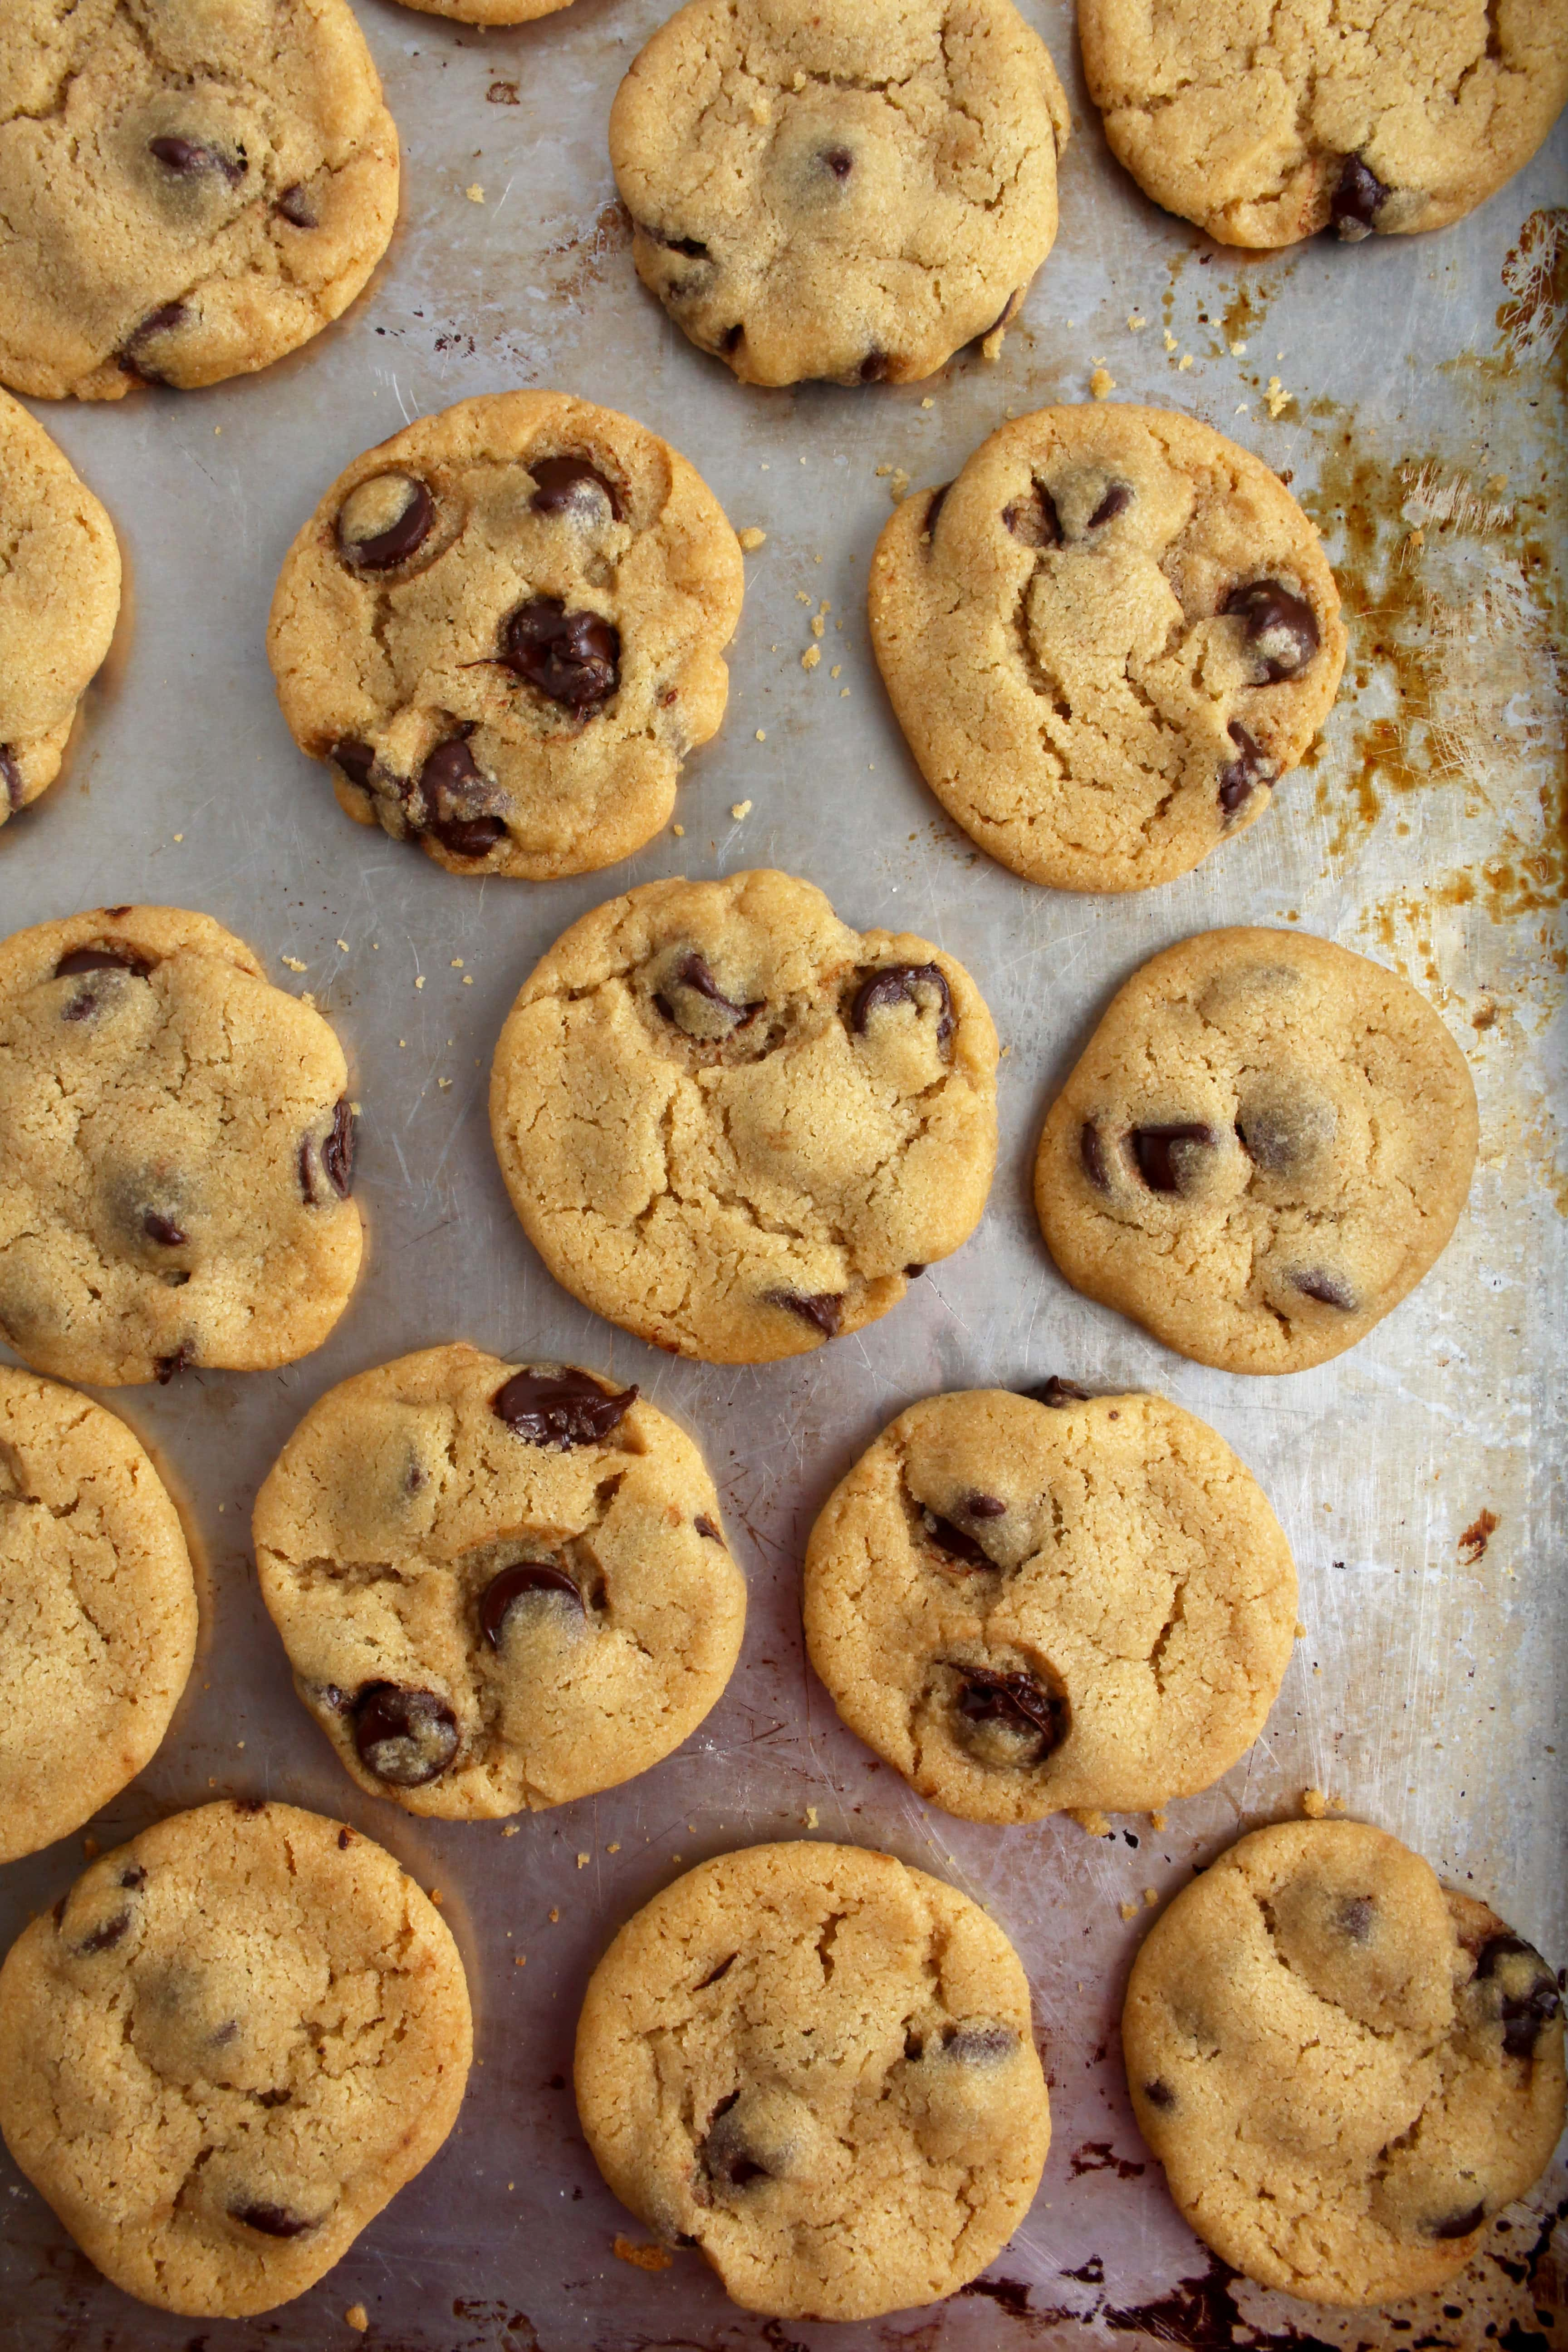 picture of vegan chocolate chip cookies on a baking tray